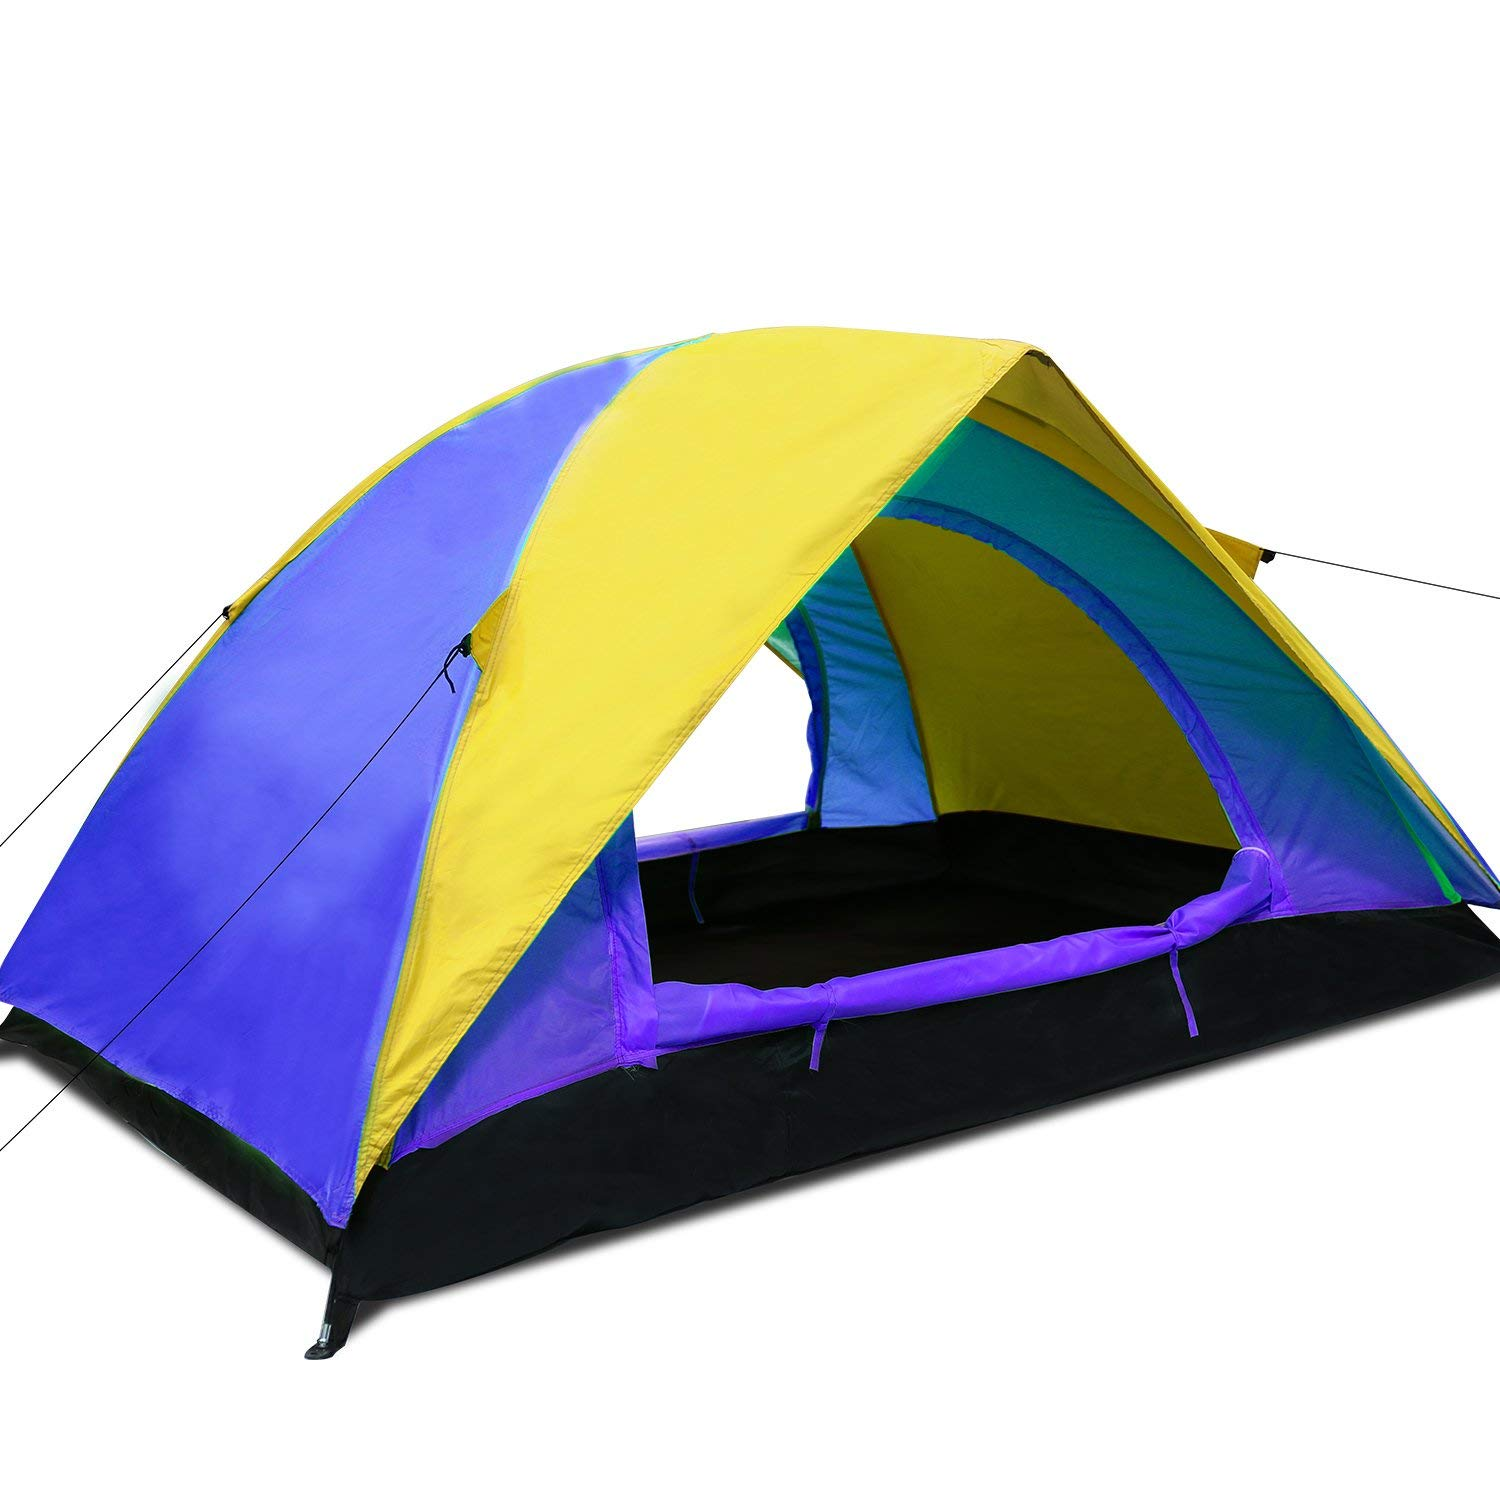 Argus Le Camping Tent 2 Person [並行輸入品] 3 Season Tent Hiking B07R3Y5XP4 Tent, Lightweight Waterproof Backpacking Tent for Camping, Backpacking, Hiking, Outdoor Activities with Carry Bag [並行輸入品] B07R3Y5XP4, ベストワンオンラインショップ:274ec953 --- anime-portal.club